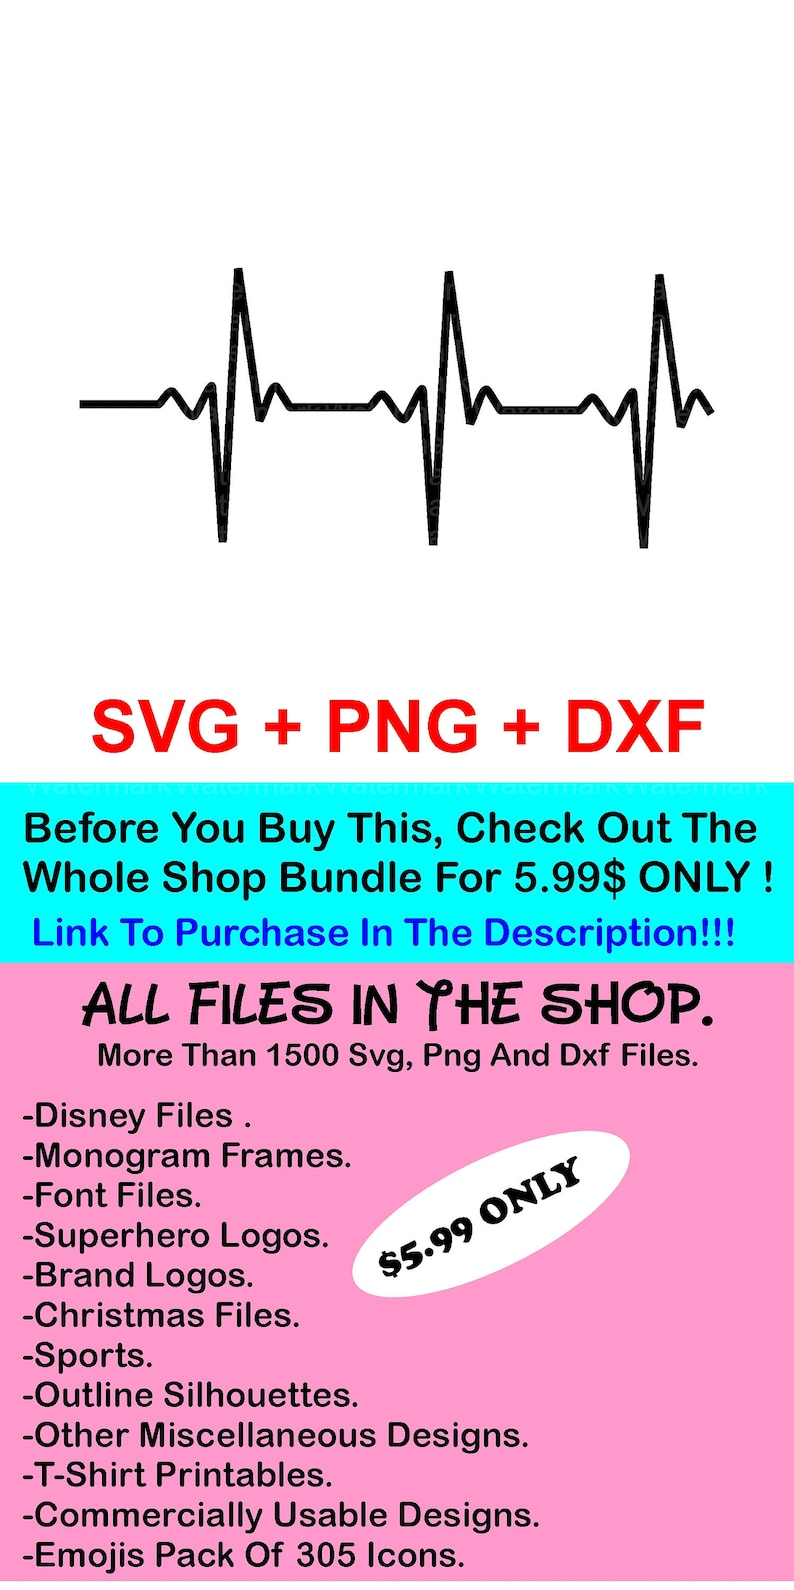 Heartbeat Svg, Png, Dxf, Heart Beat Svg, Heartbeat Pluse Svg, Heart Rate  Svg File, Nurse Svg, Doctor Svg, Cut File, Cricut, Silhouette